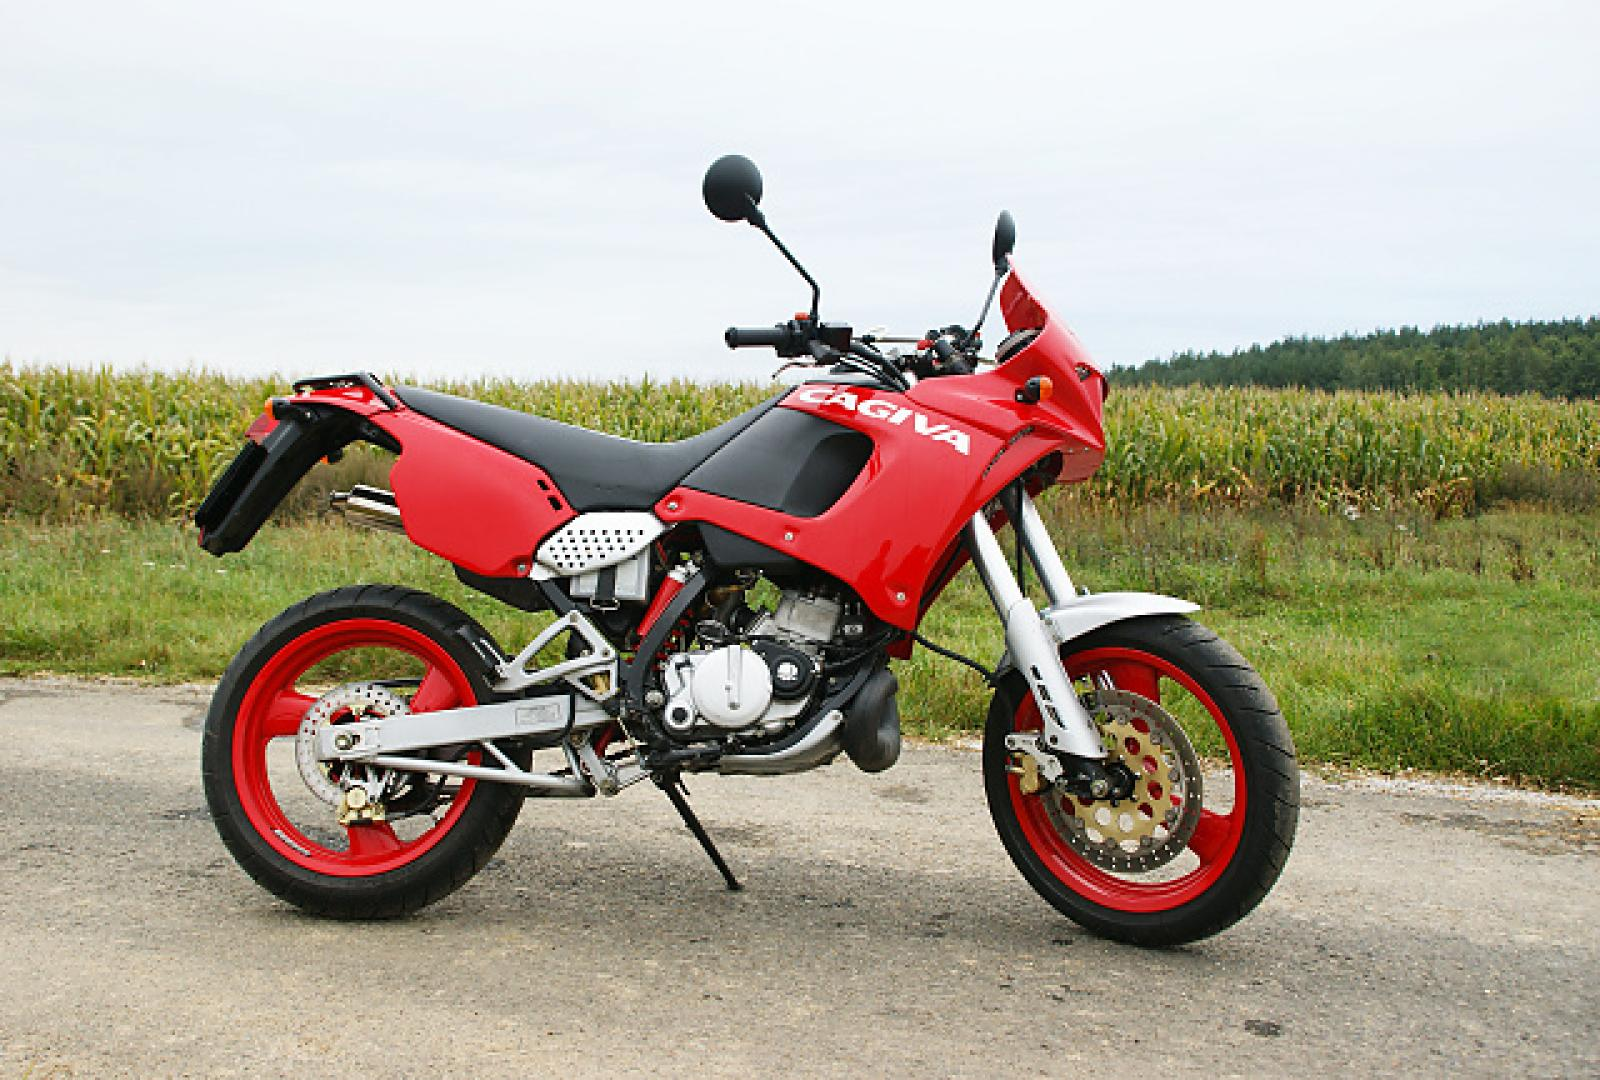 Cagiva Super City 125 1997 images #67227